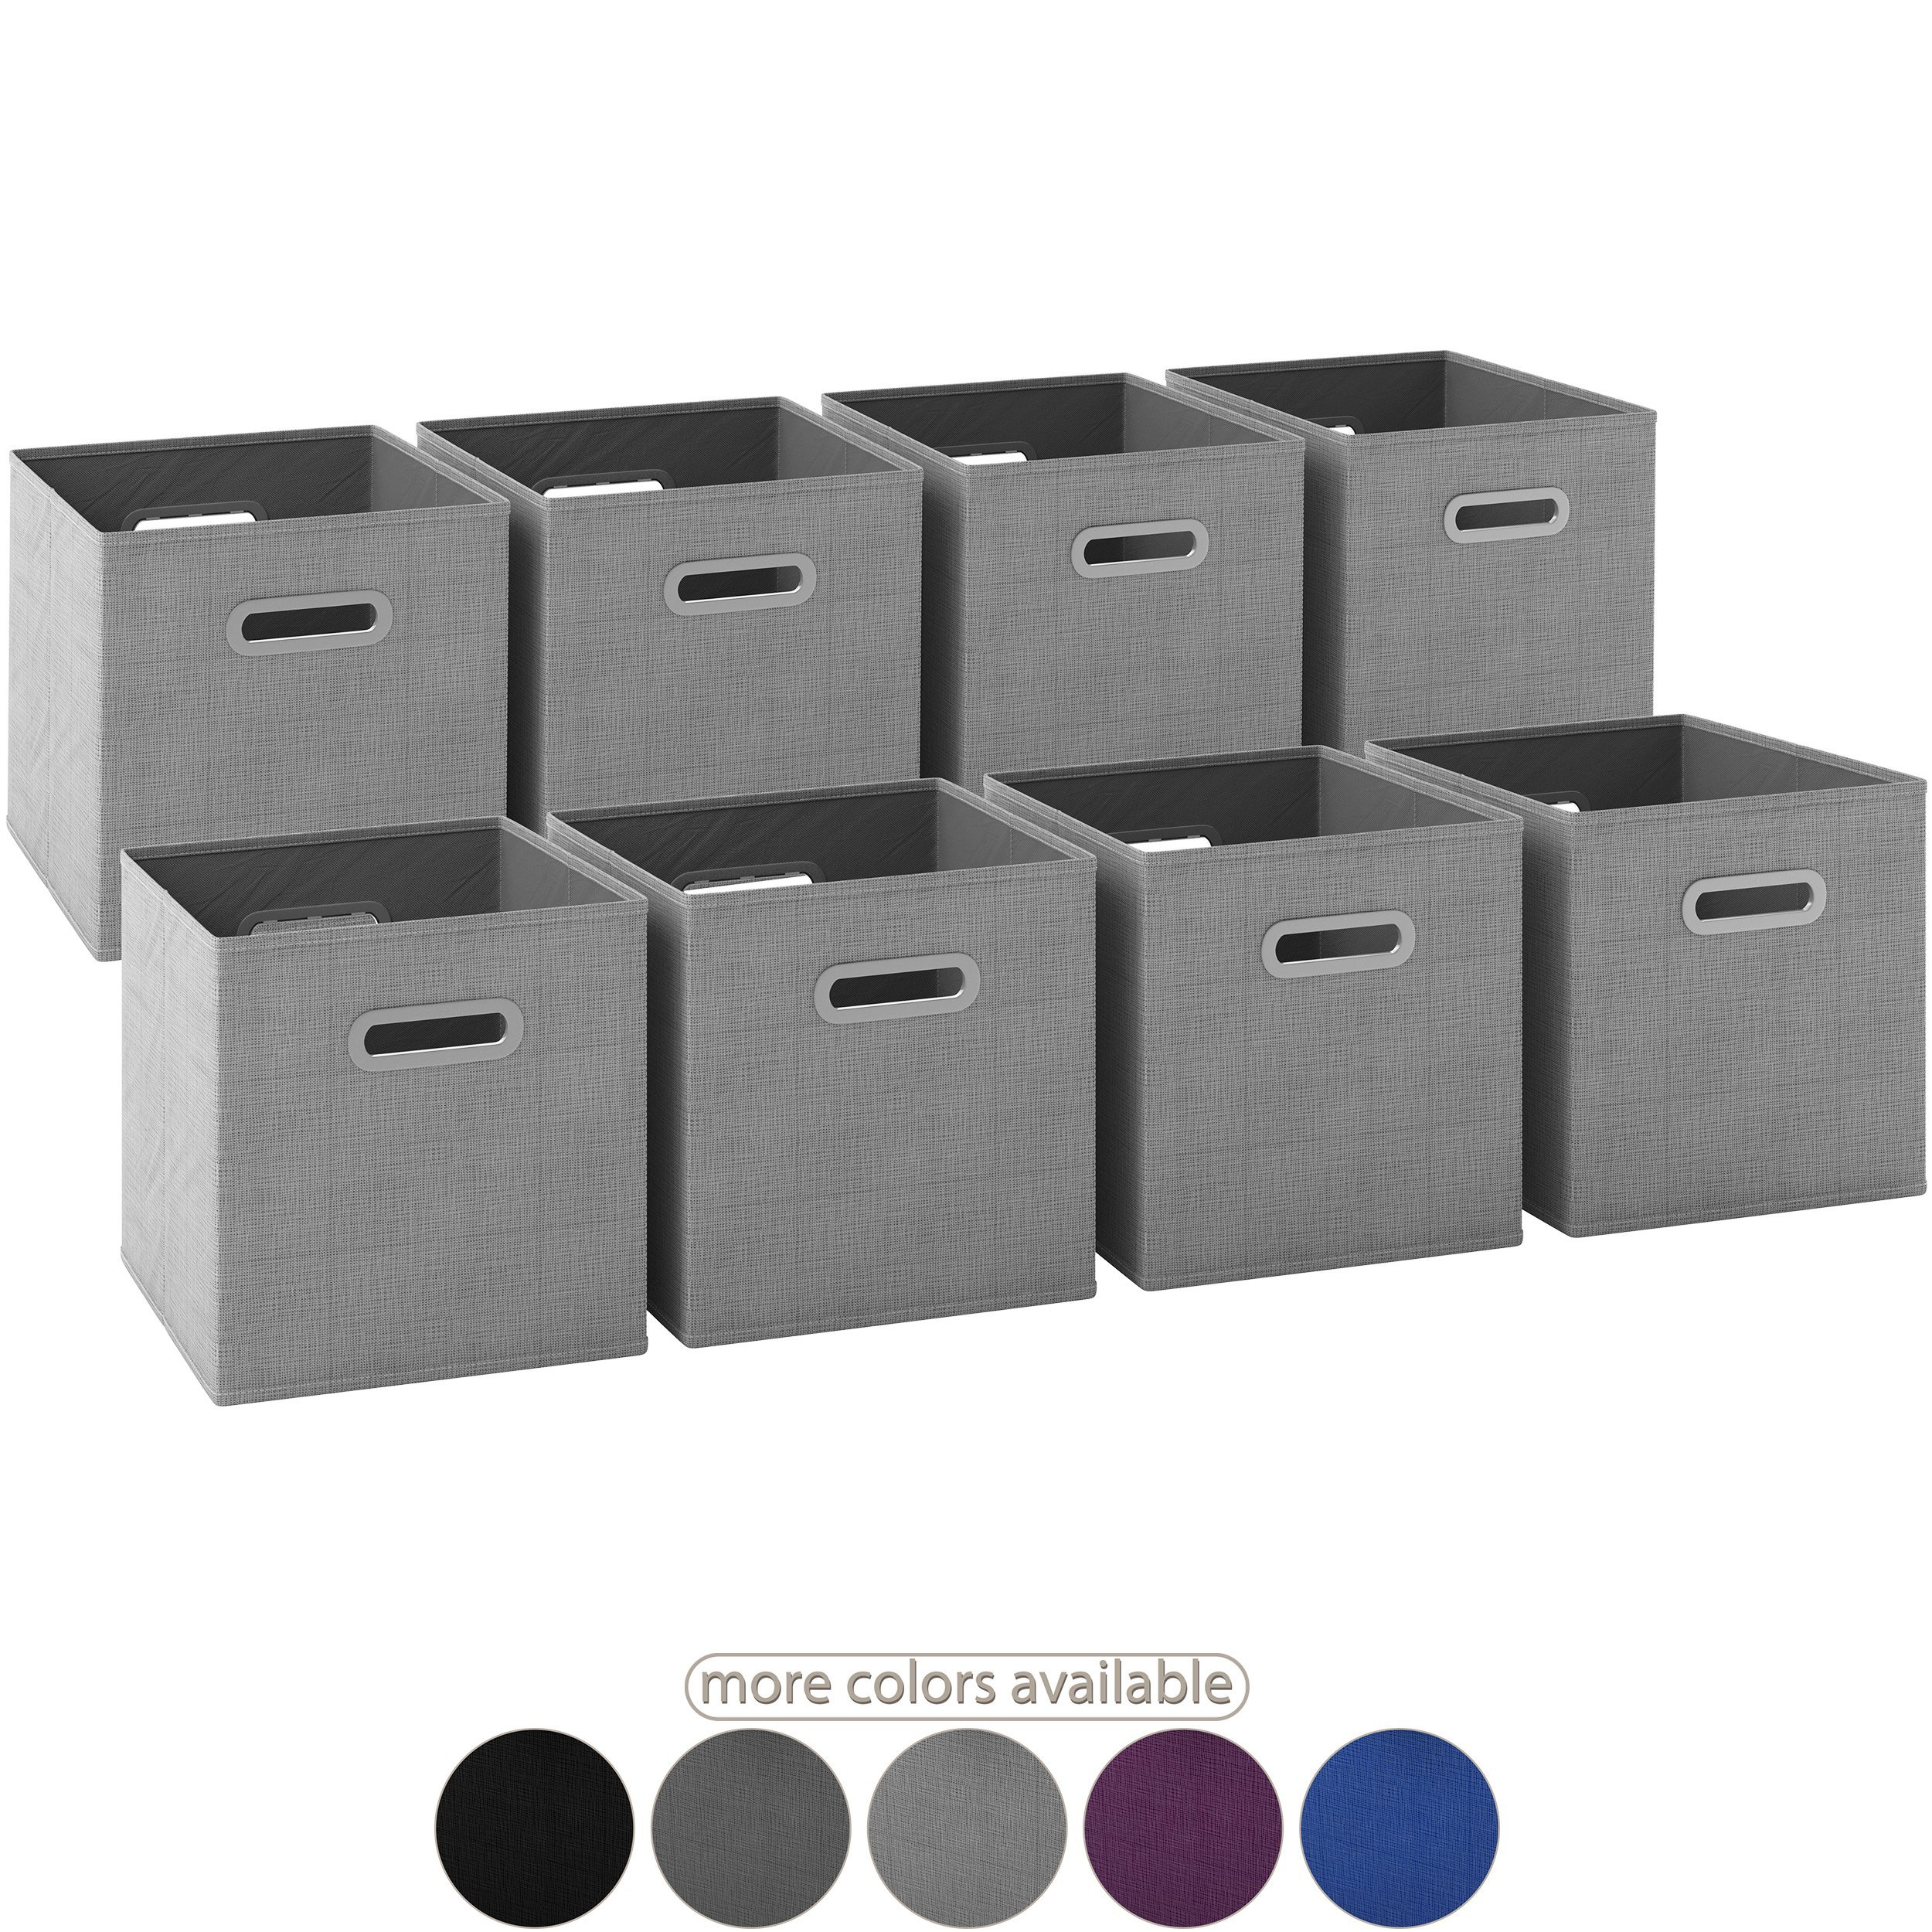 Royexe Launch Sale - Storage Cubes - (Set of 8) Storage Baskets | Features Dual Handles | Cube Storage Bins | Foldable Fabric Closet Shelf Organizer | Drawer Organizers and Storage (Light Grey)